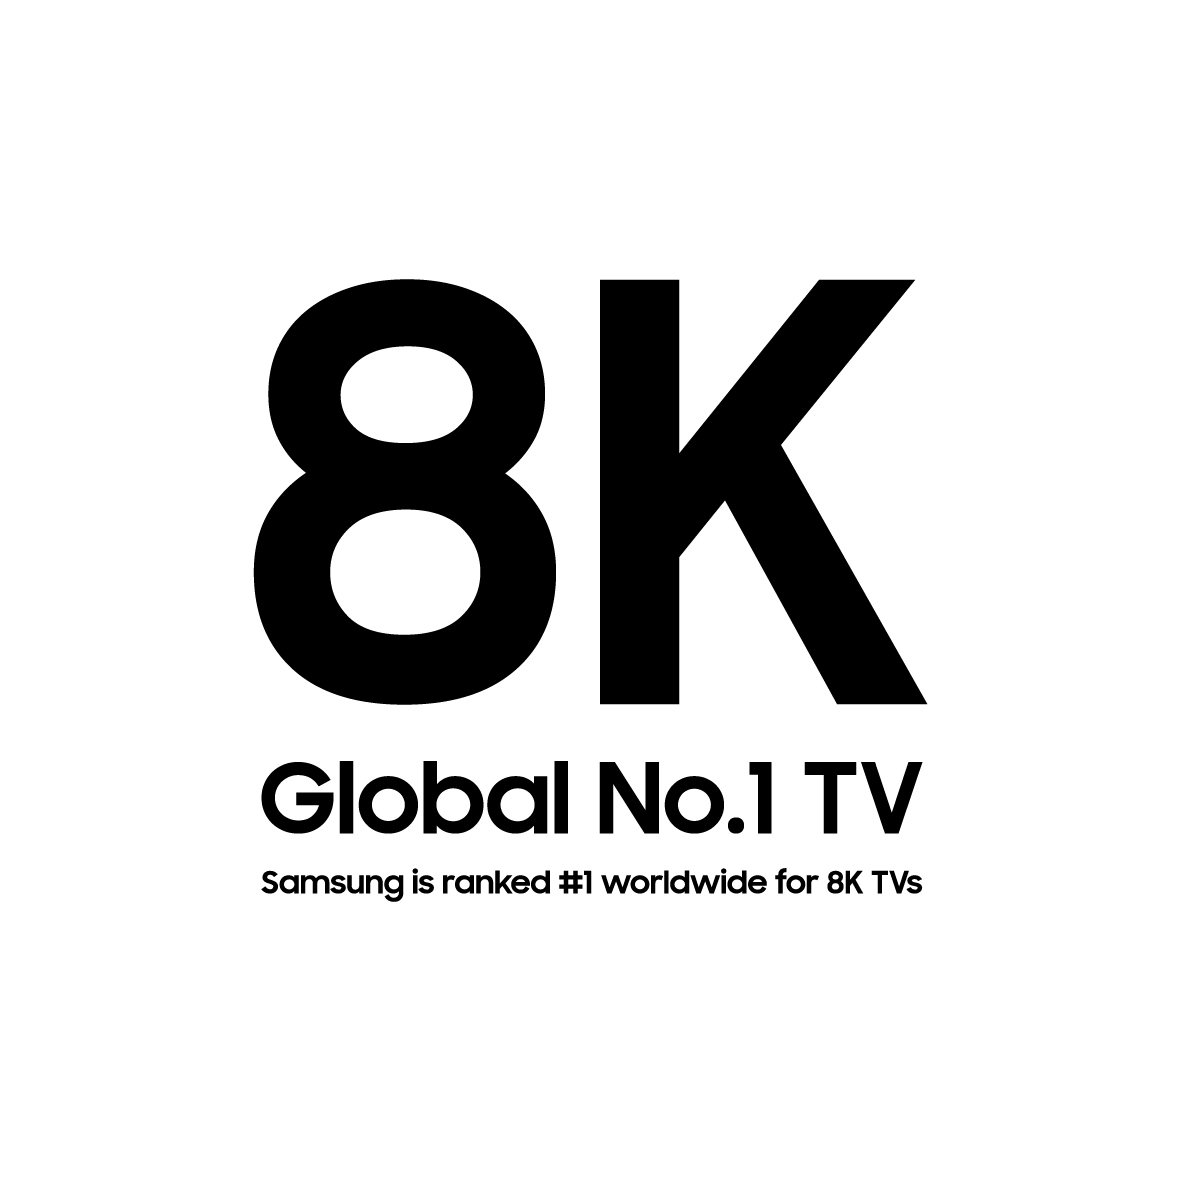 Samsung is ranked #1 worldwide for 8K TVs.ⁿ